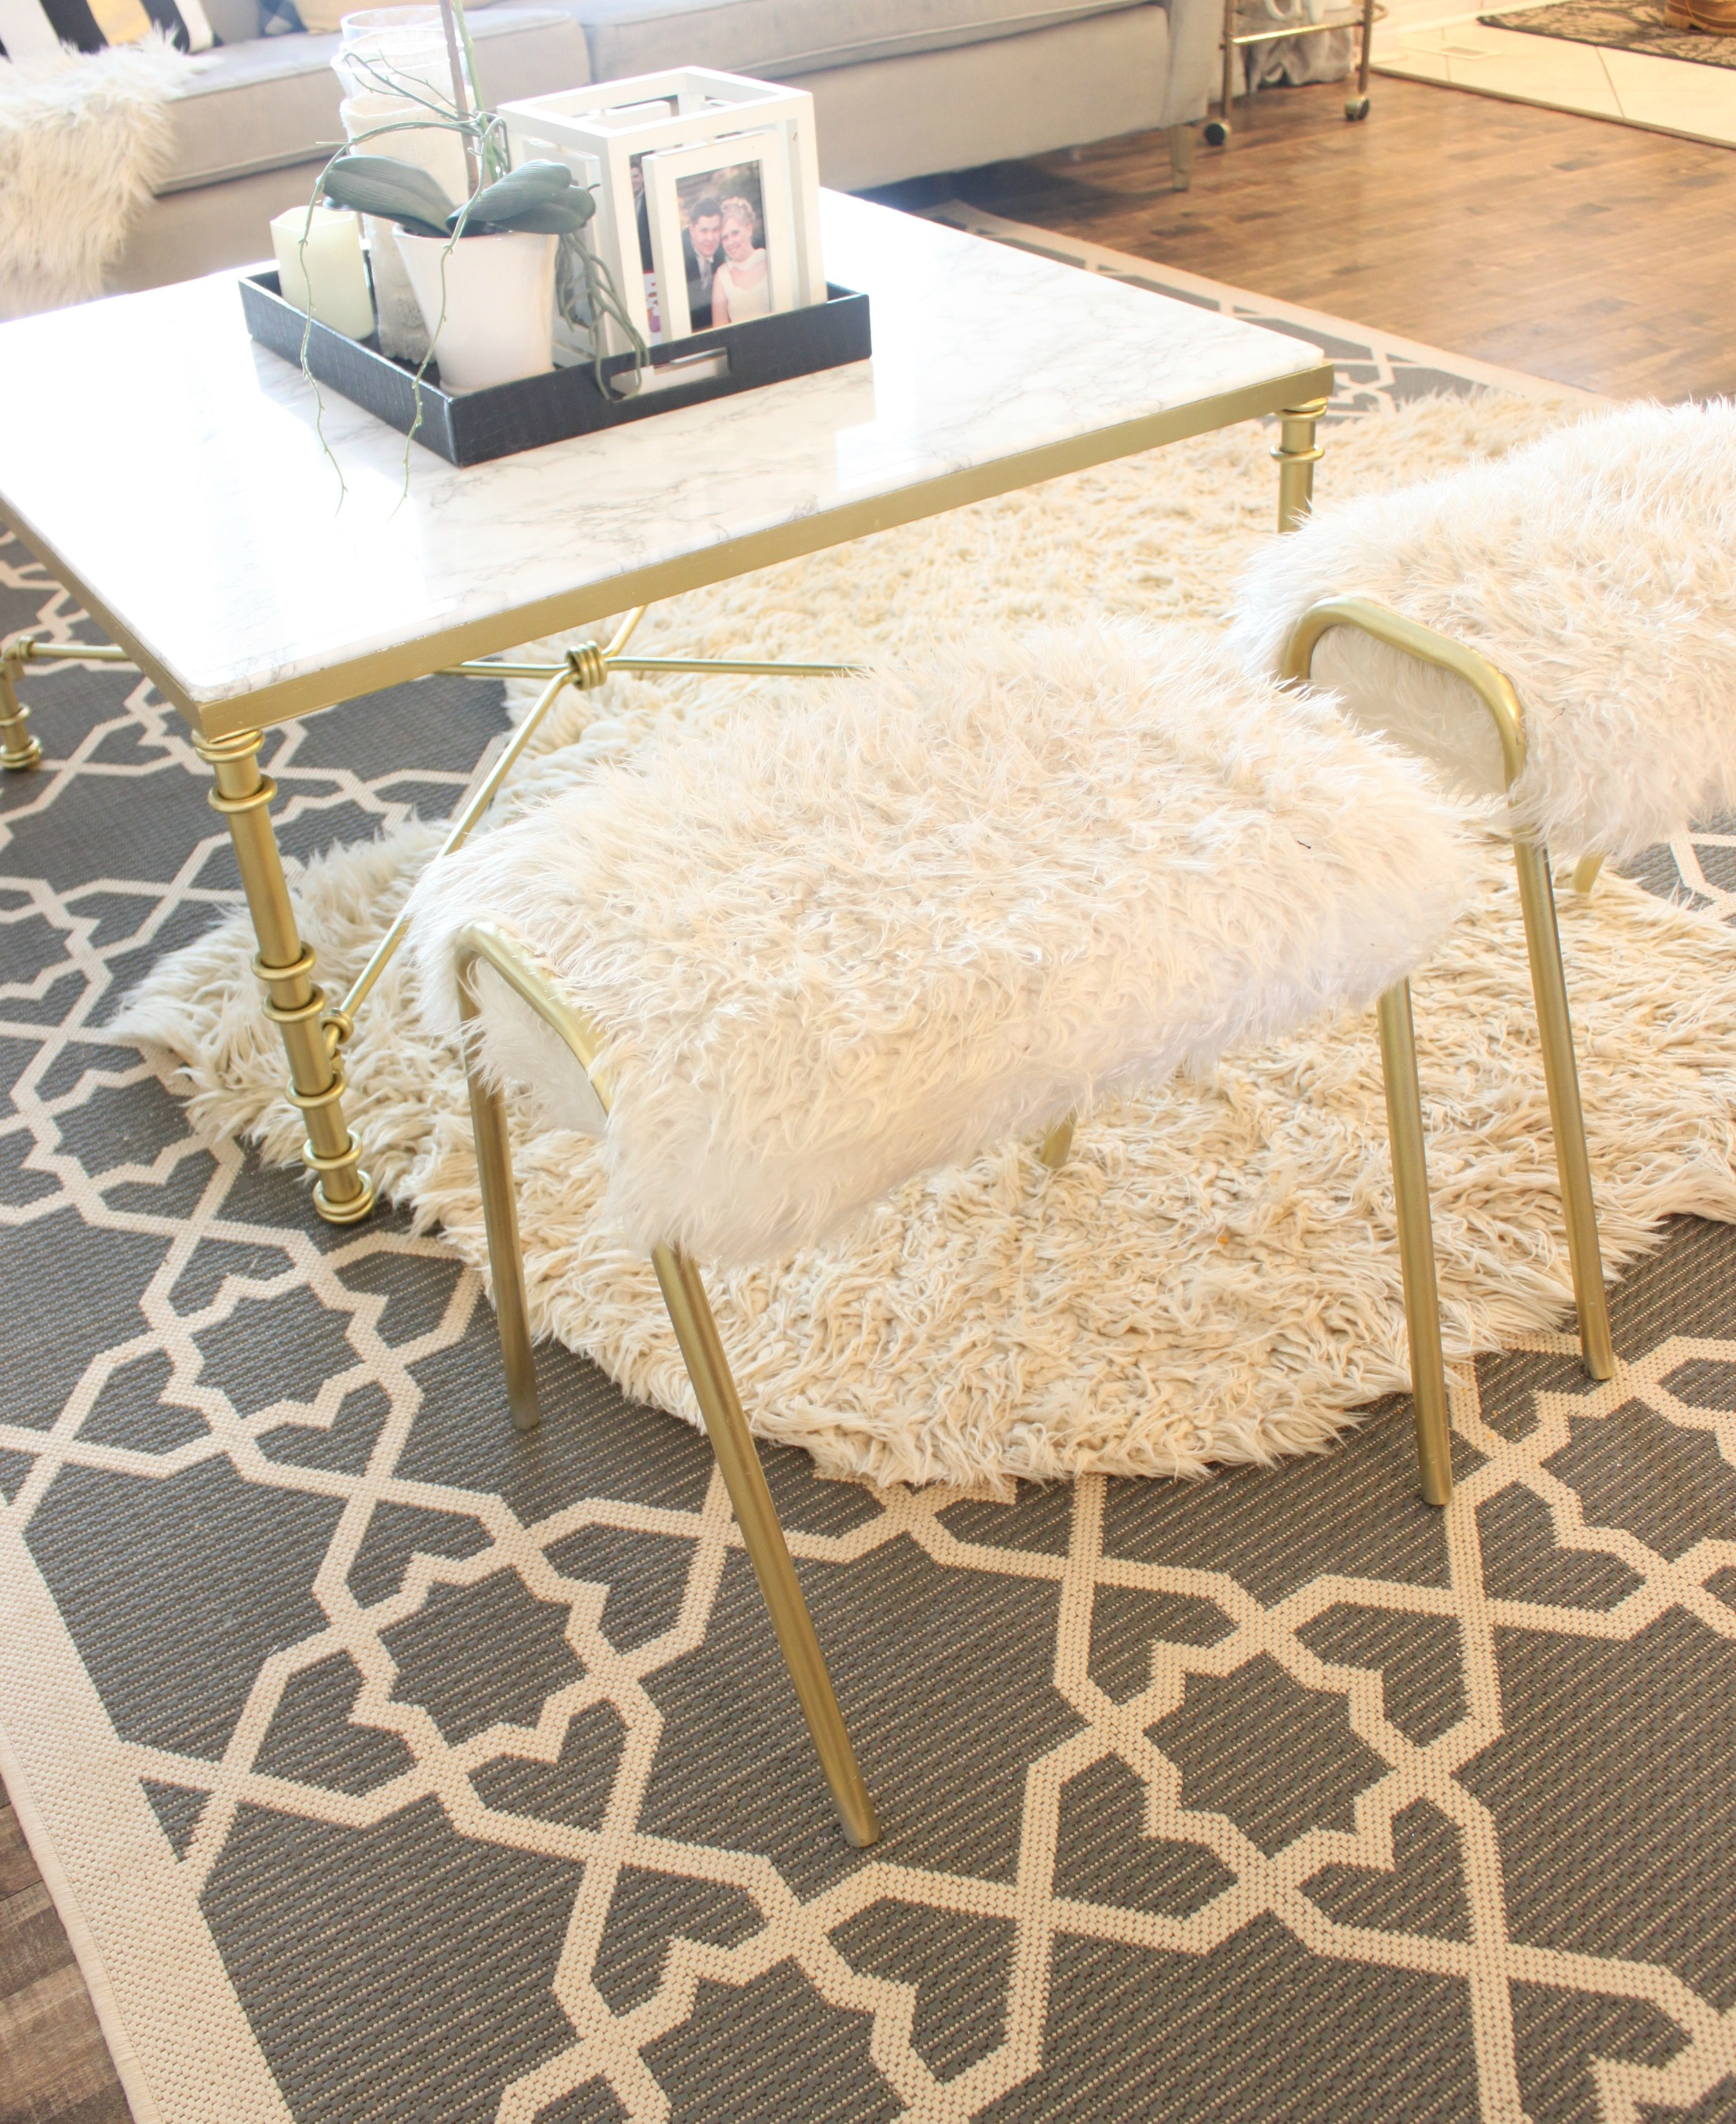 How To Reupholster An Old Stool Using Fuzzy Fun Fur And Gold Spray Paint.  See